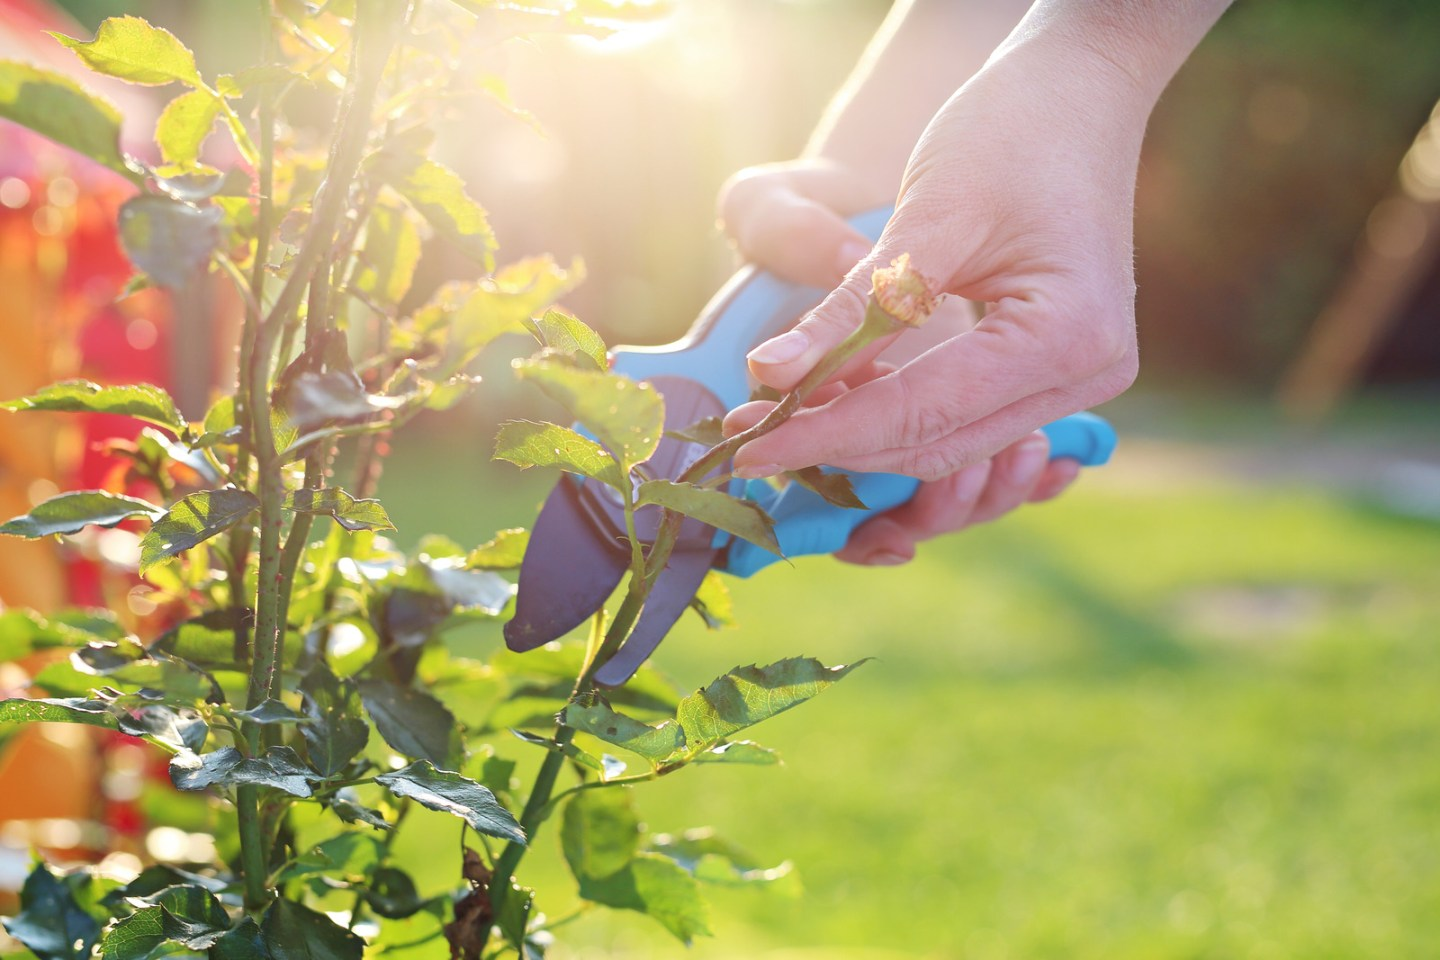 Gardener pruning shears cut shrubs roses